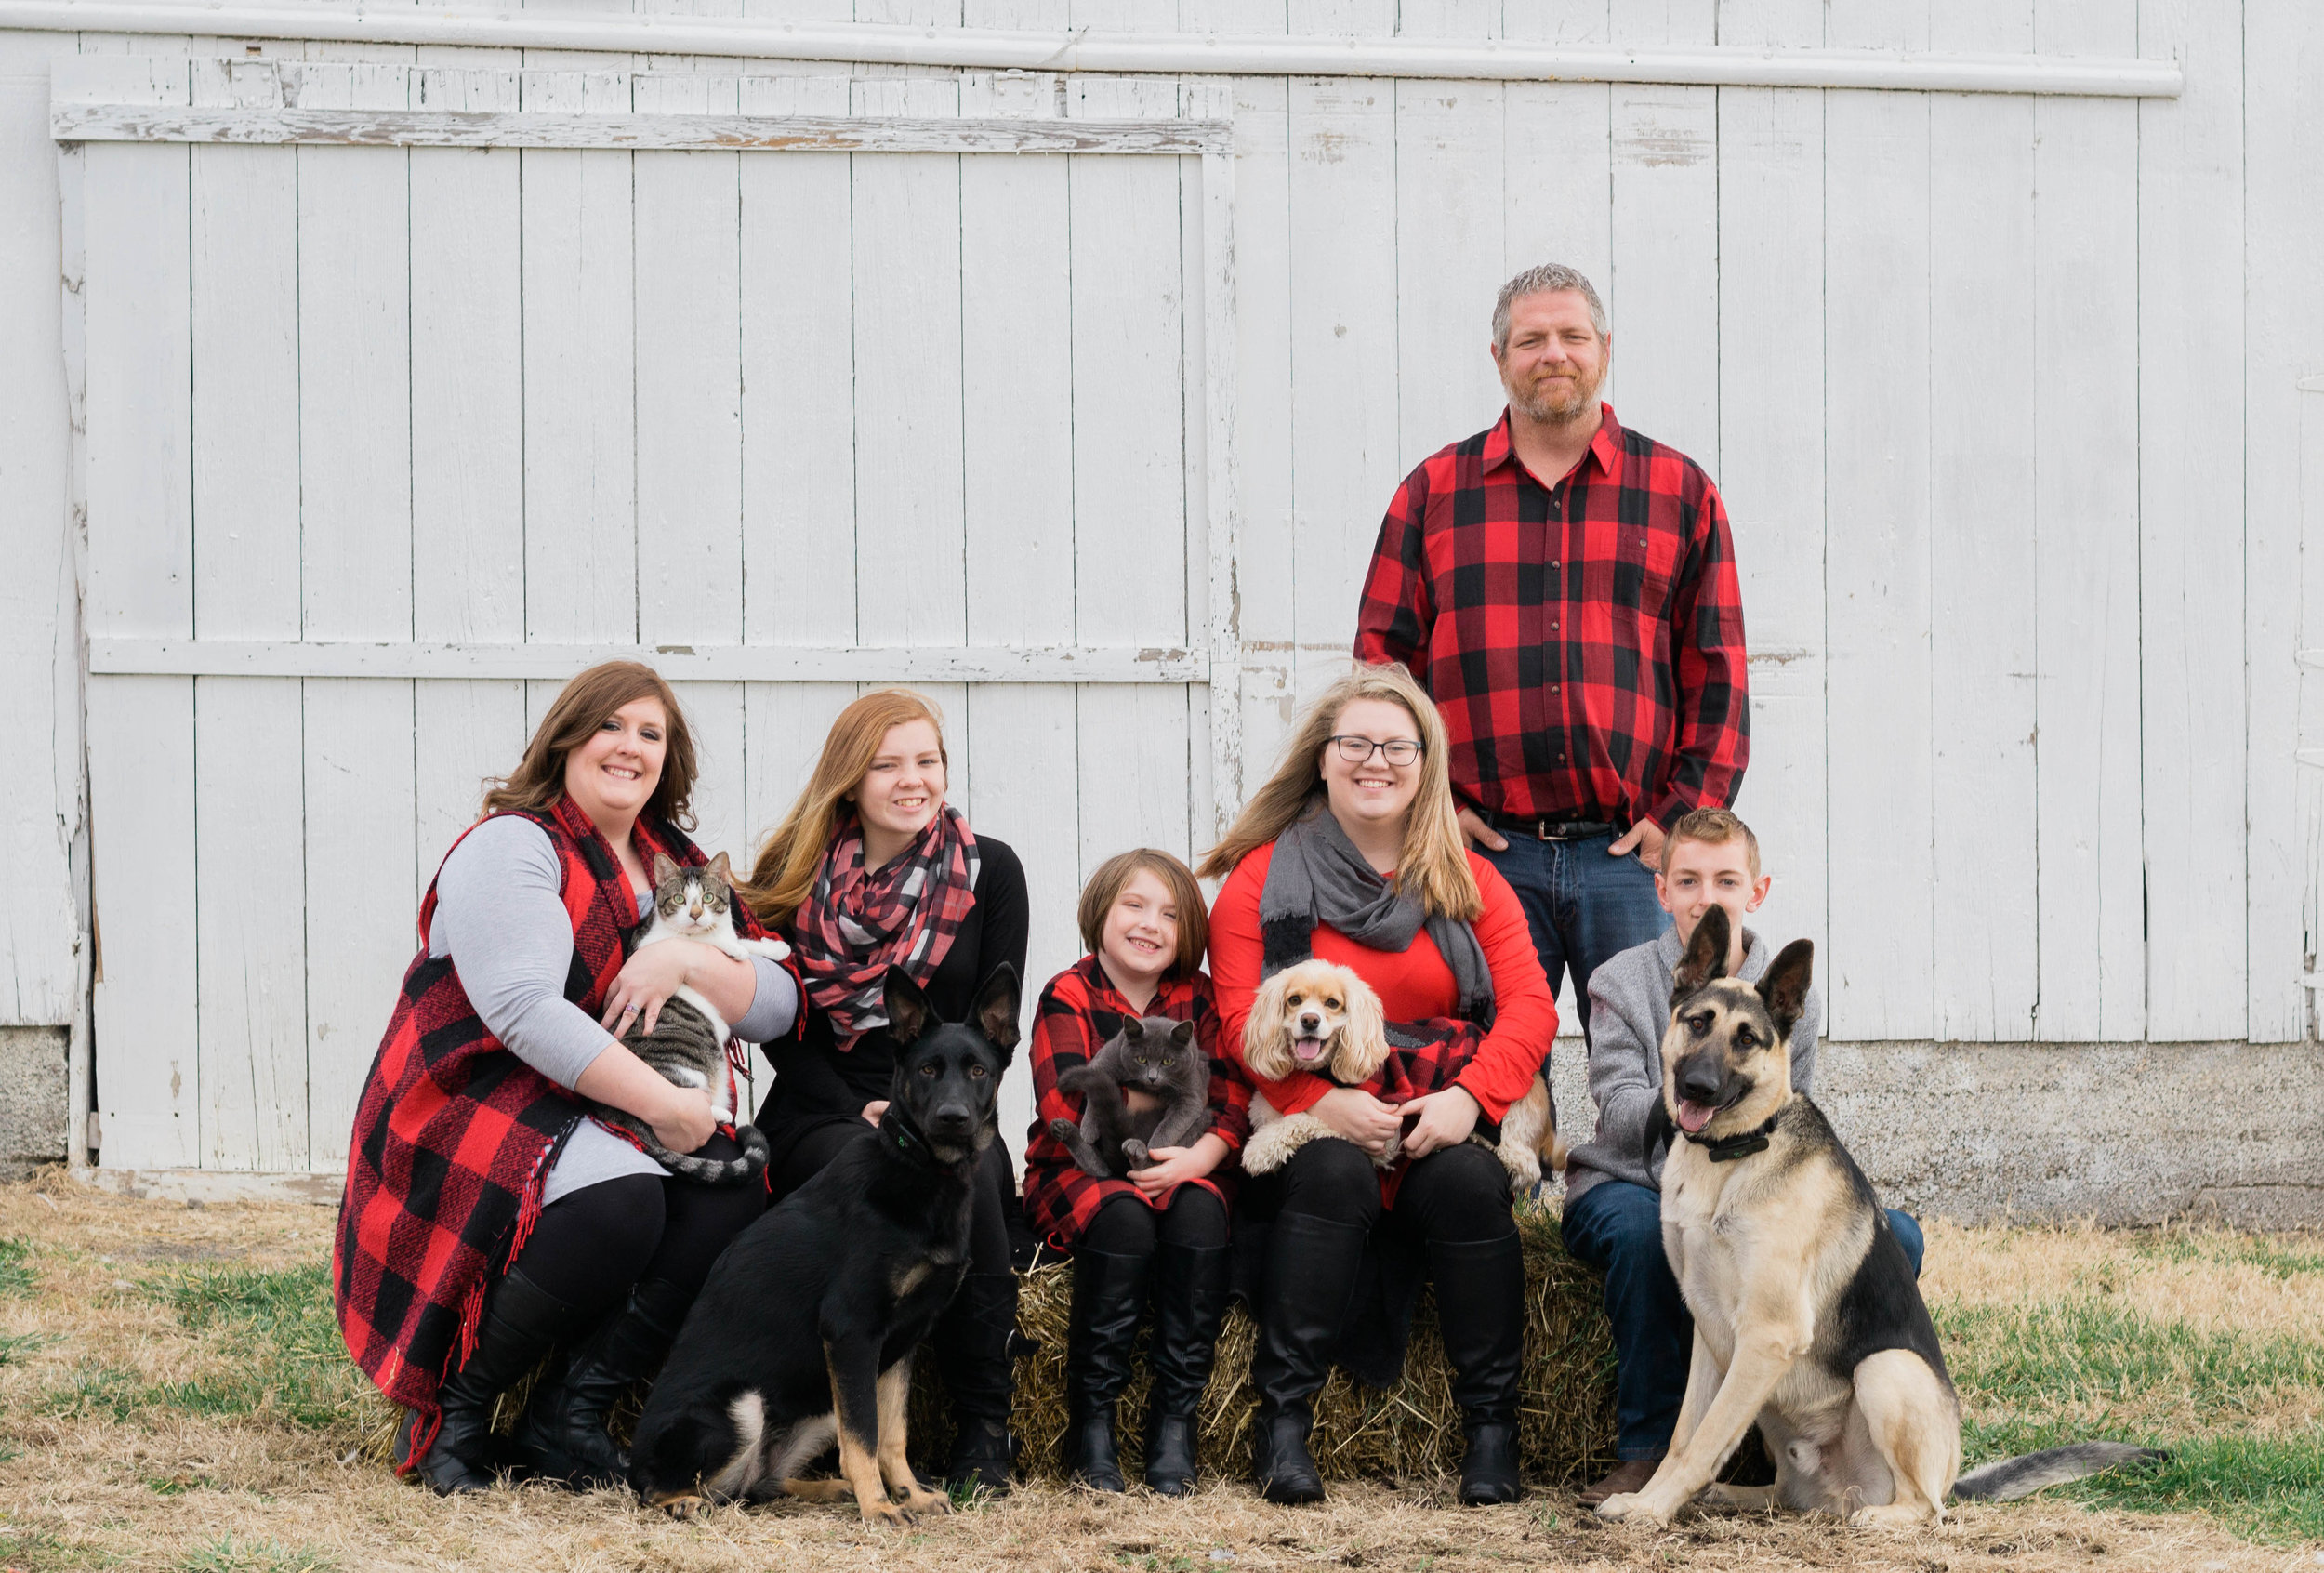 """craddock family - Courtney was so awesome to work with! I wanted pictures at our new house in front of our barn and she made it happen! She traveled all the way to our home on a chilly morning just to get the perfect shots! The pictures turned out great.... even the one with our animal herd in them!! Thank you so much Courtney for the pictures!!!"""""""